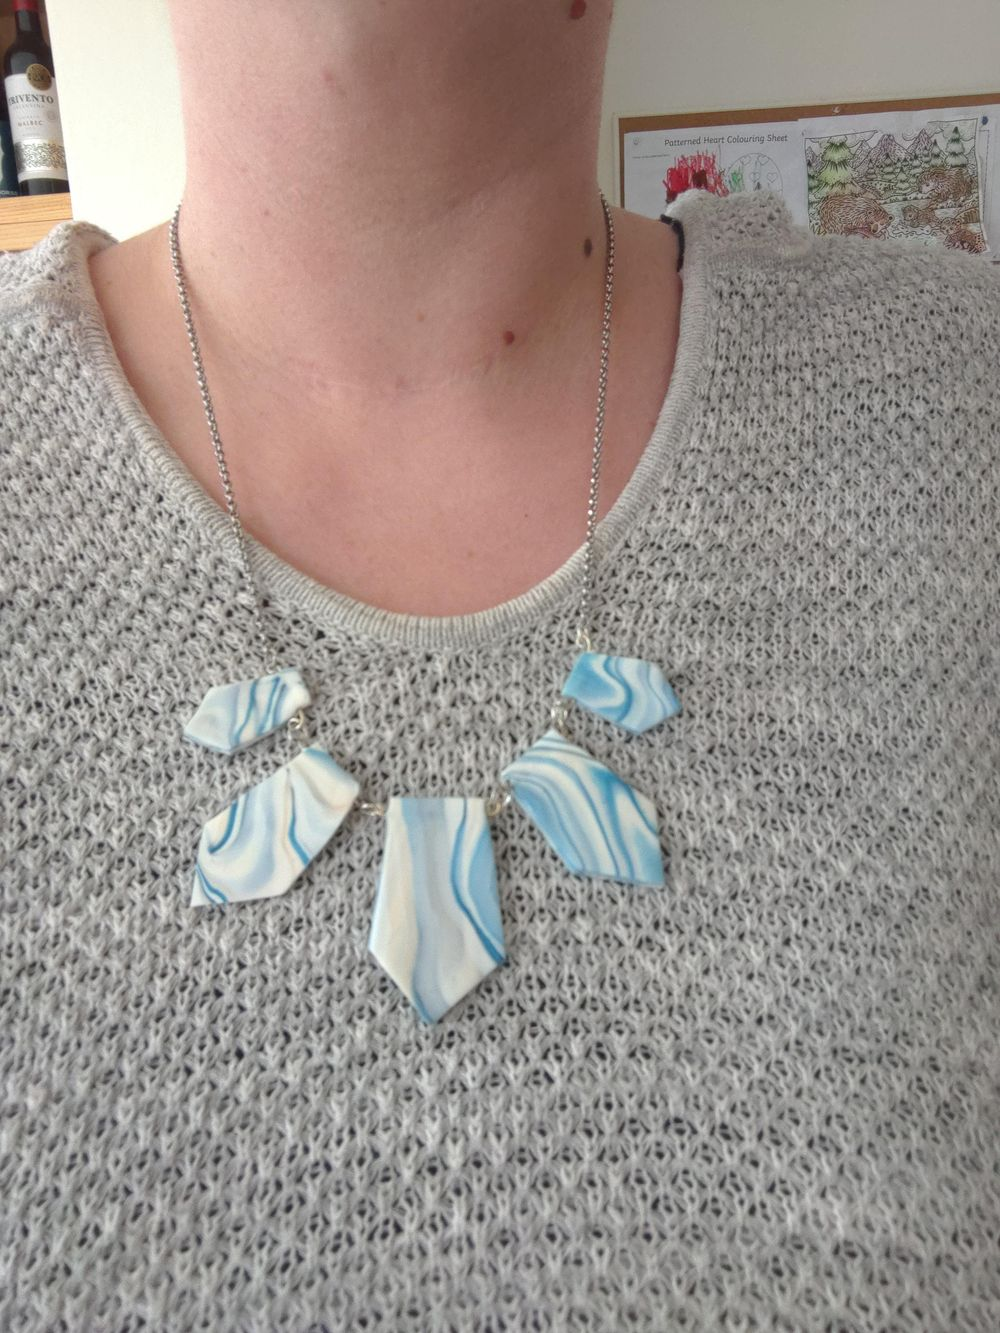 My marble FIMO necklace - image 1 - student project